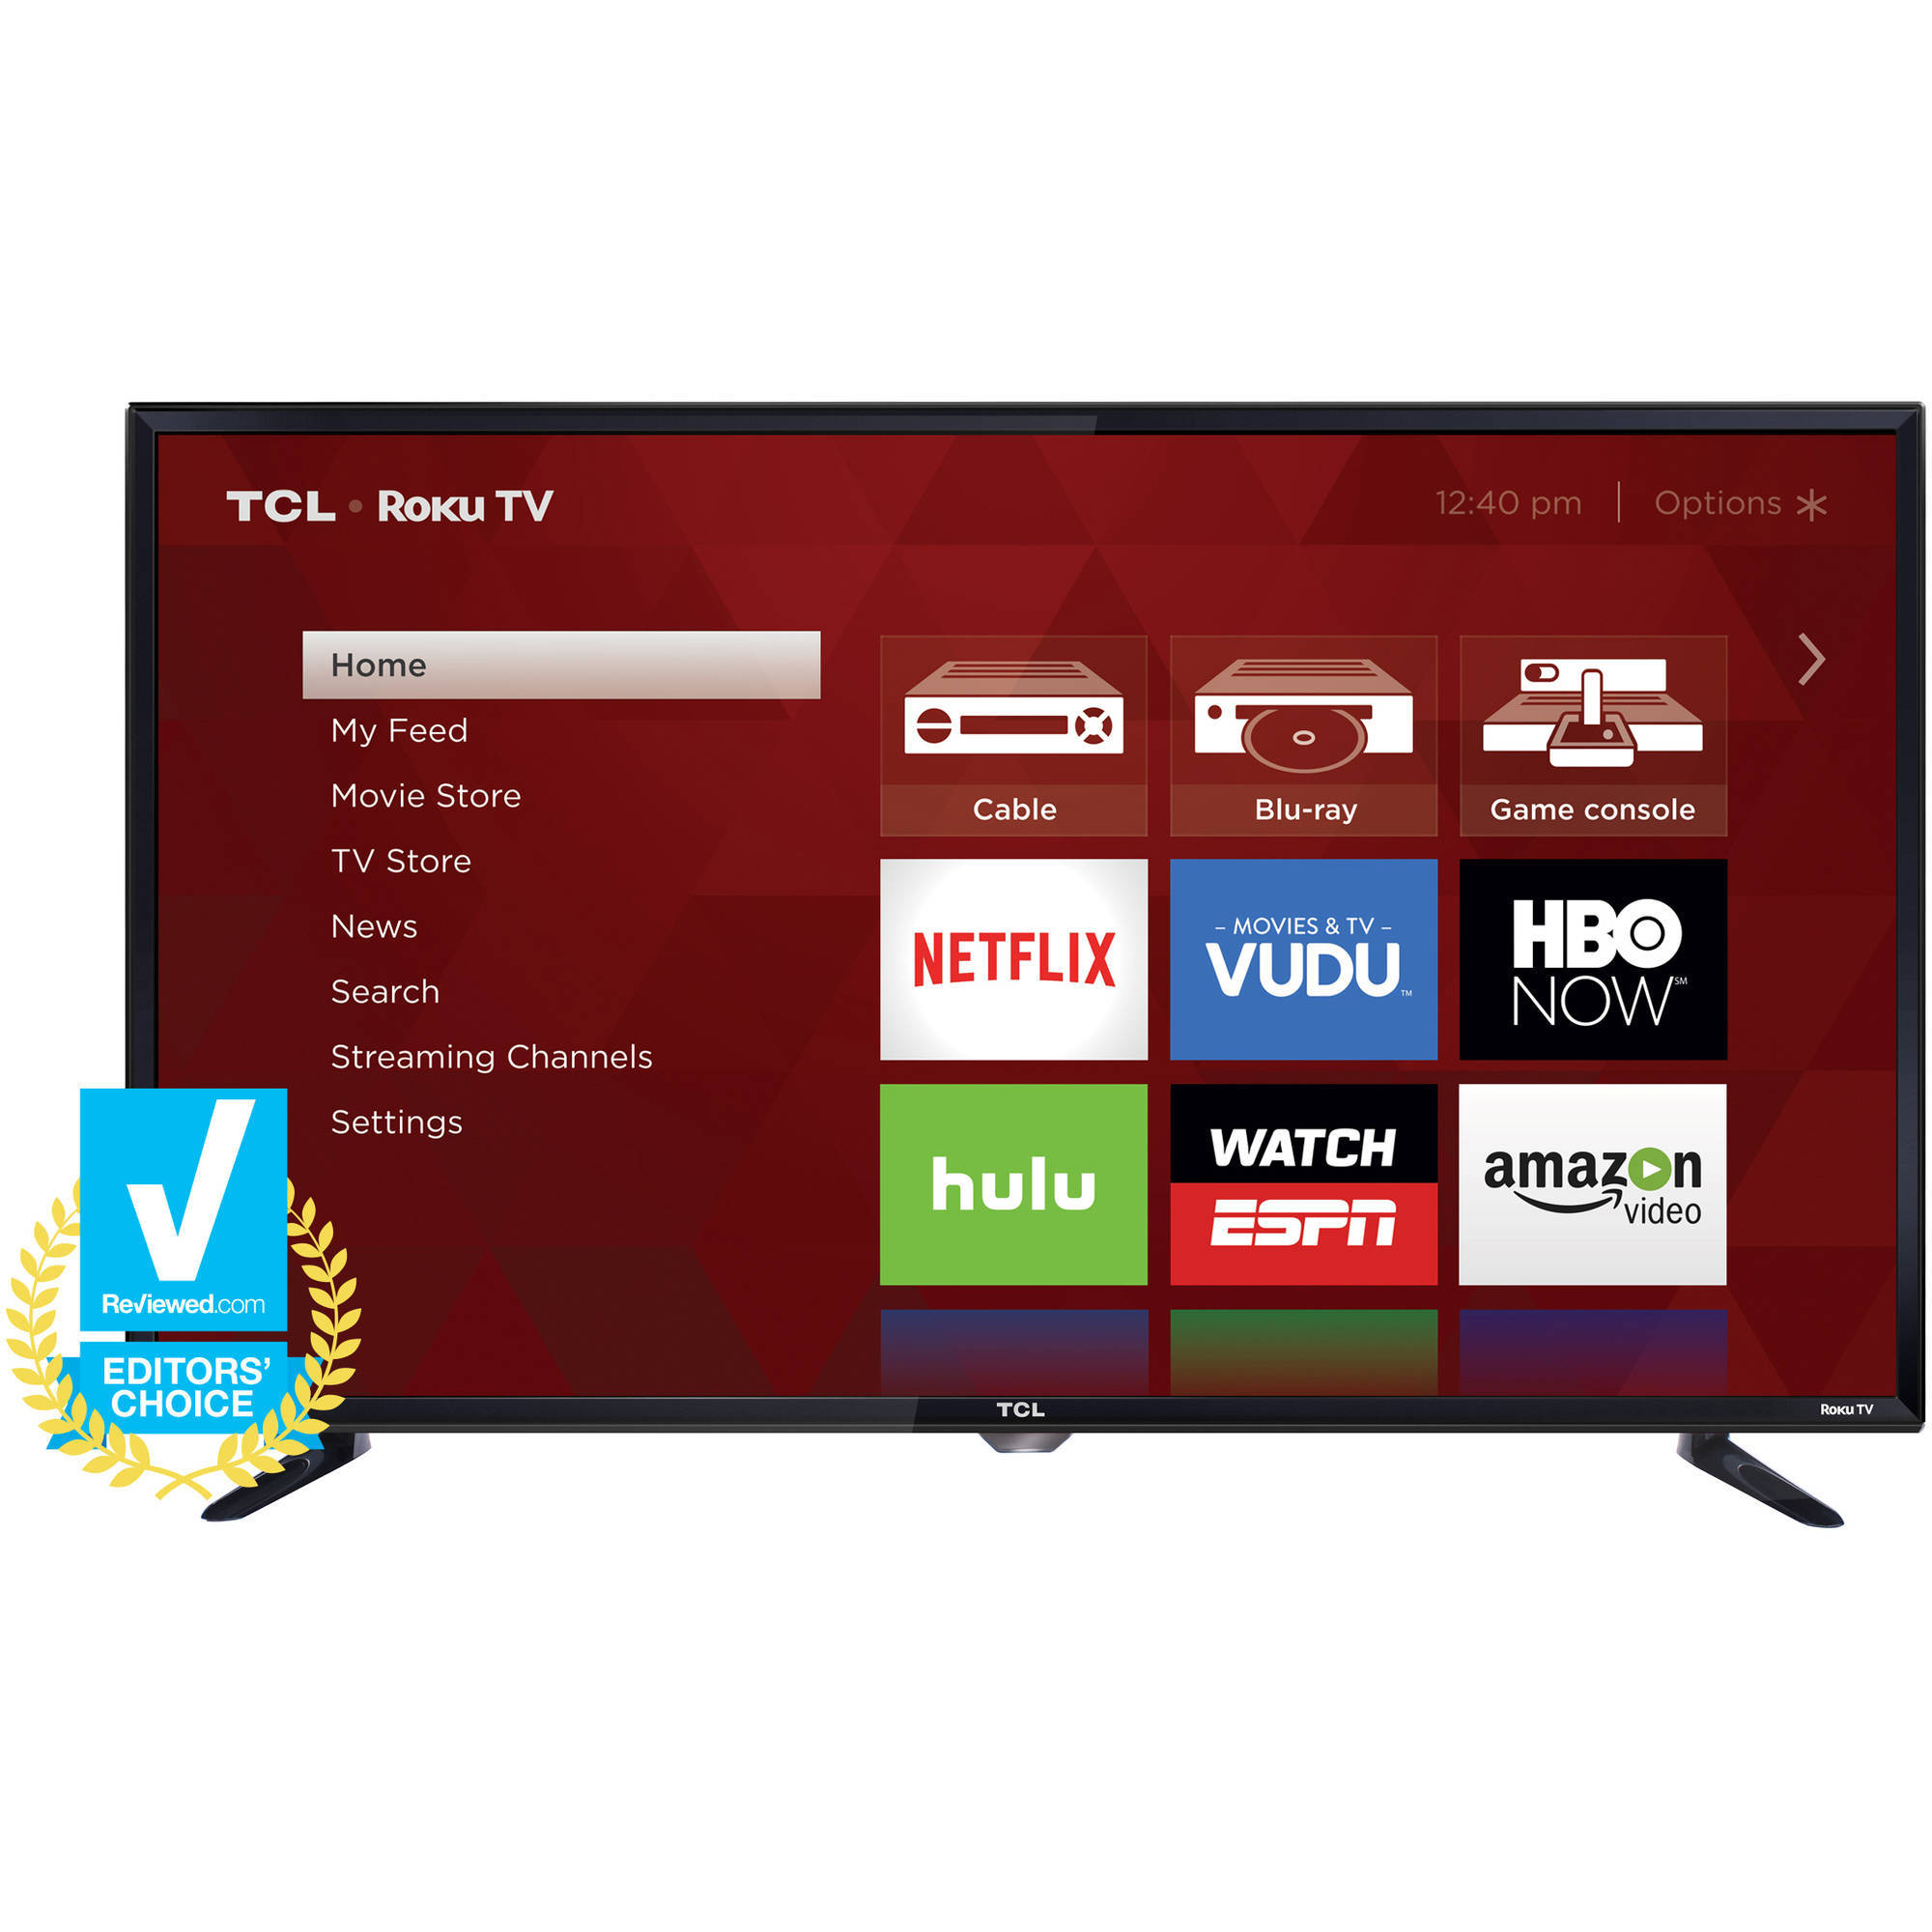 Roku Wiring For Dish Network Wire Center Home Diagram Tcl 32s3750 32 720p 60hz Smart Led Hdtv Walmart Com Rh Cable